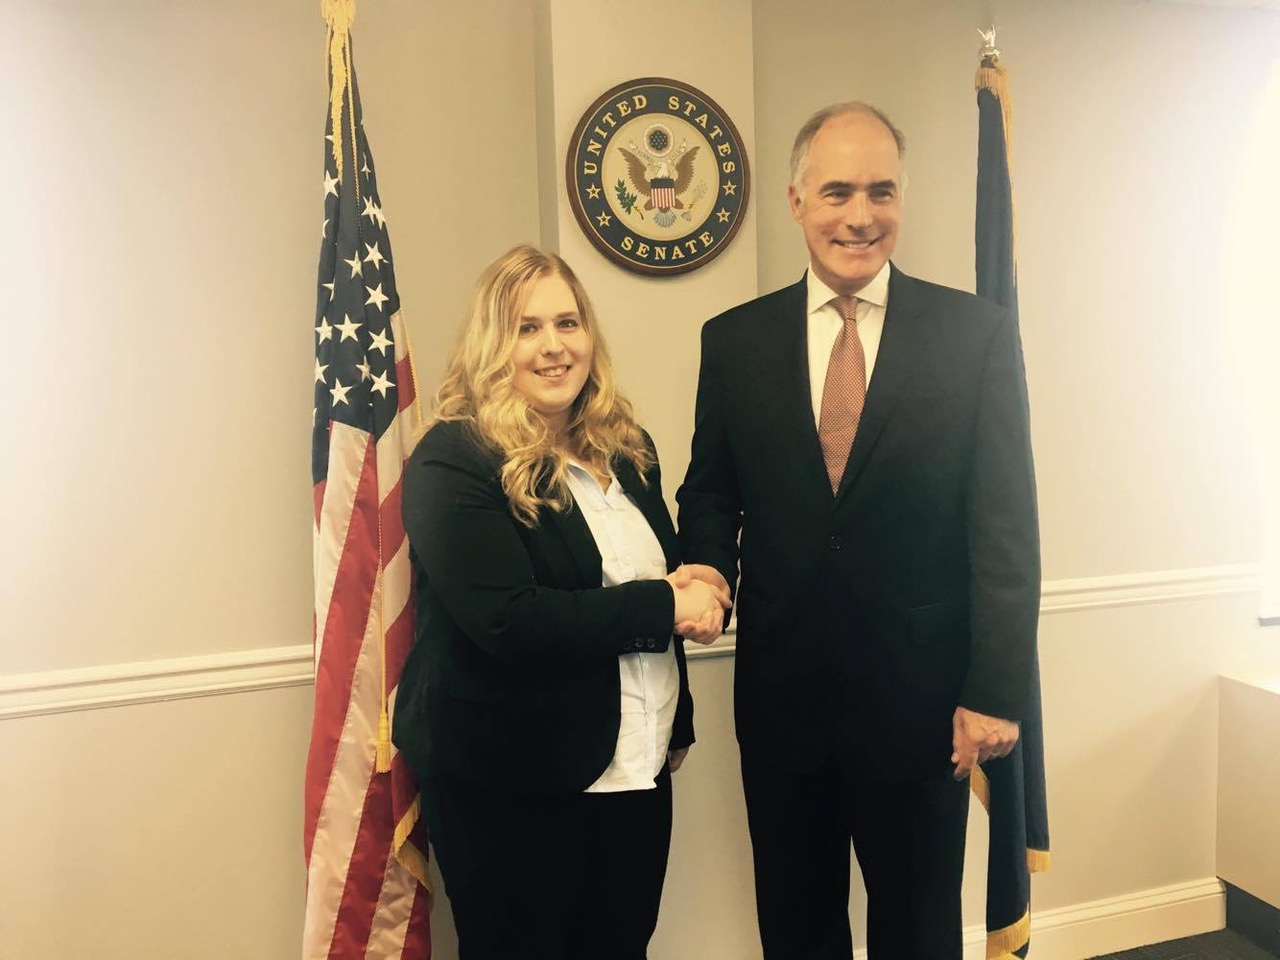 Sarah Fertsch with PA Senator Bob Casey Jr.